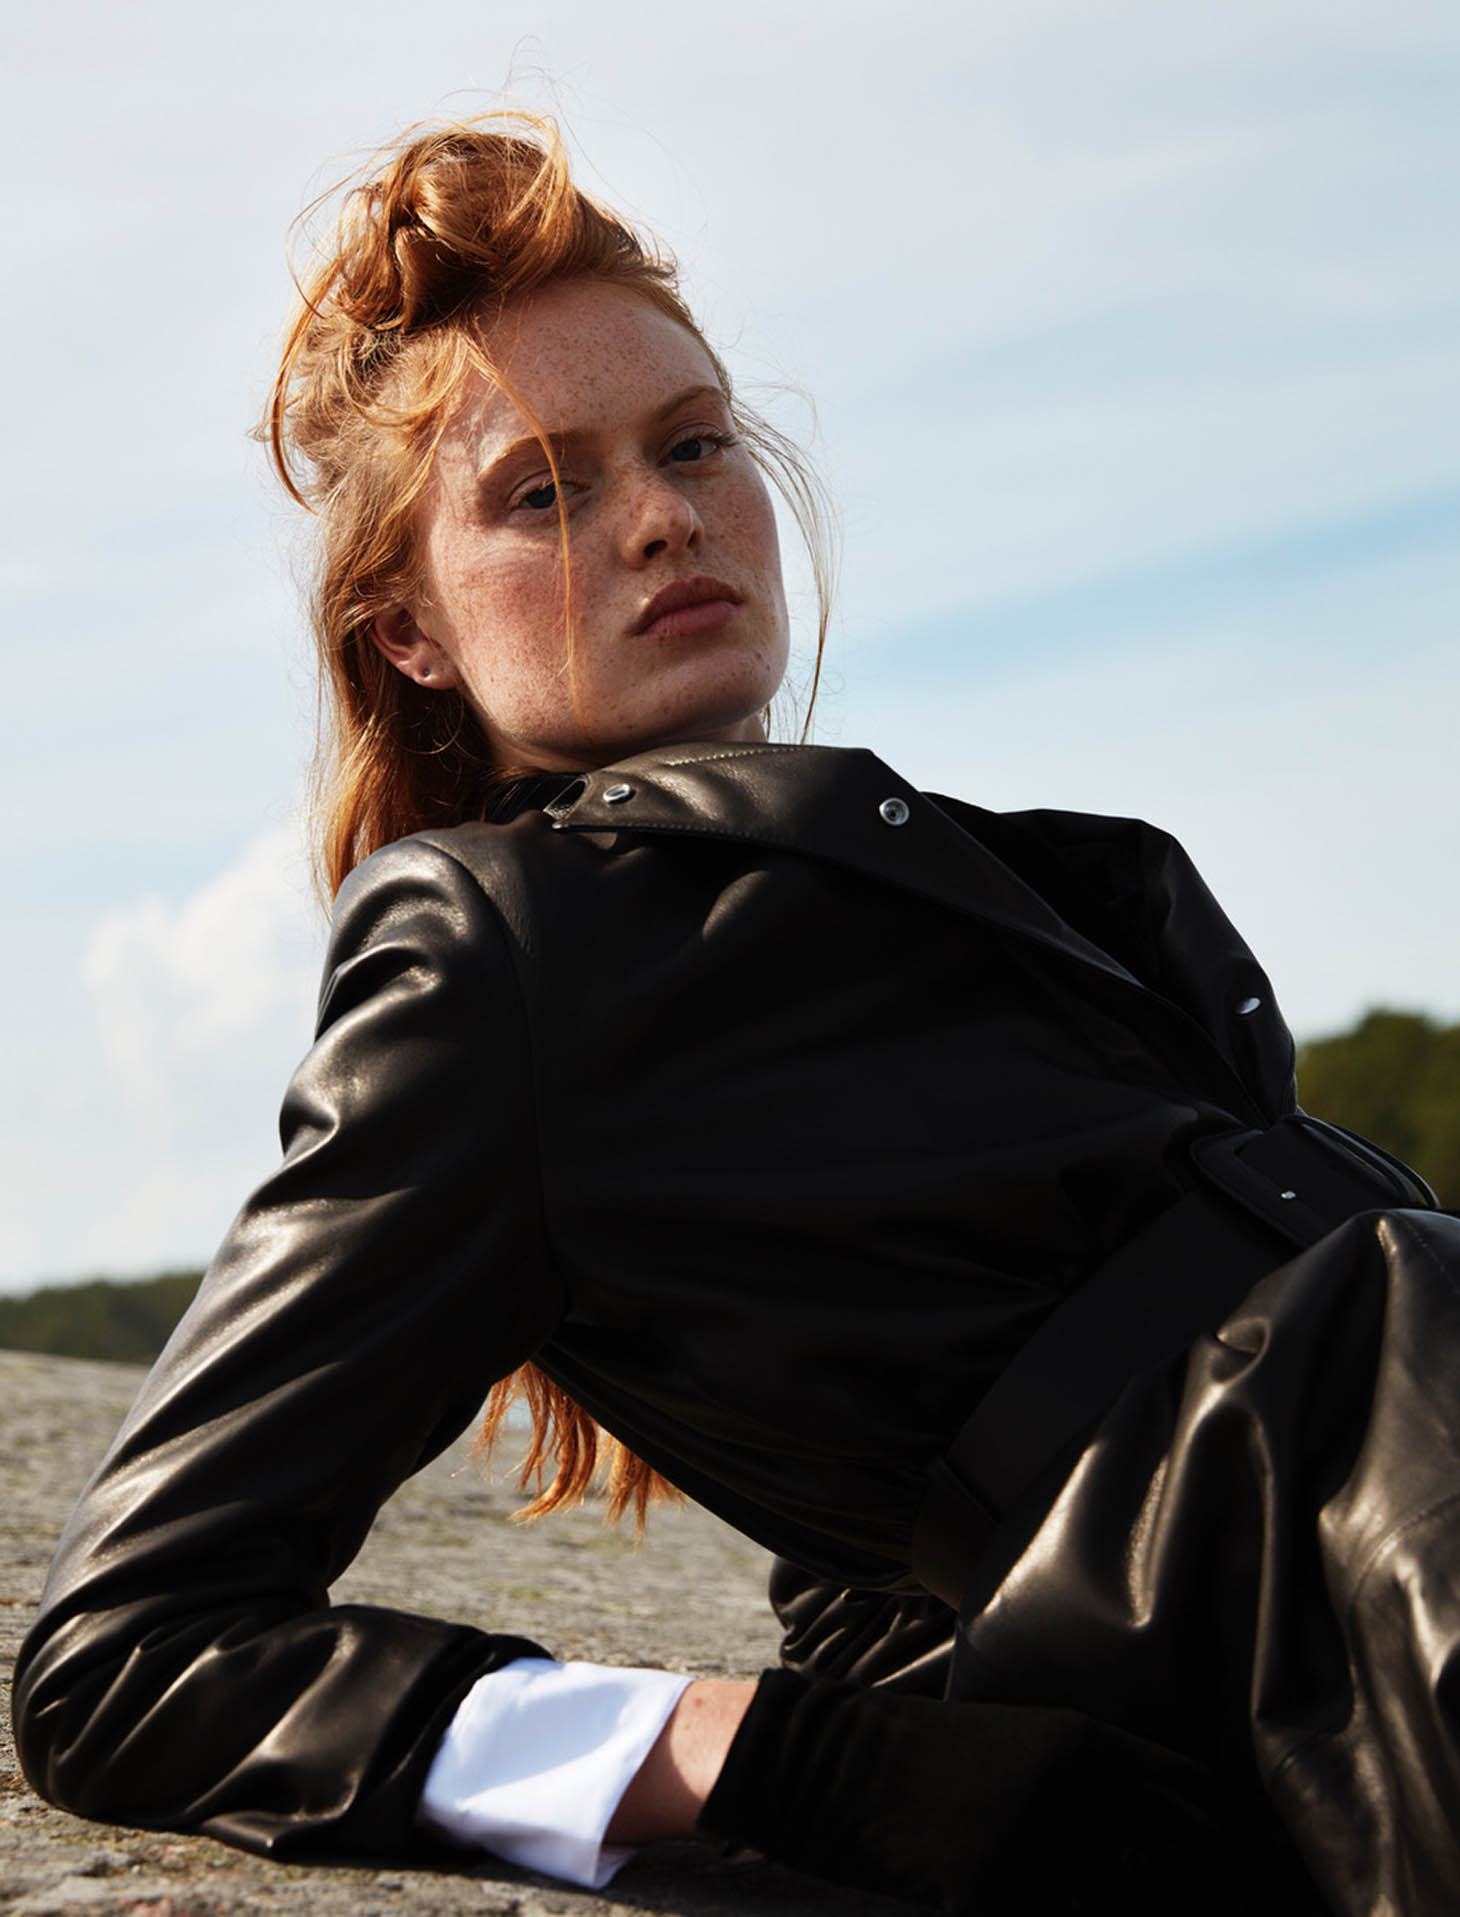 icon magazine red hair outdoor shooting male female tony lundstroem hair styling